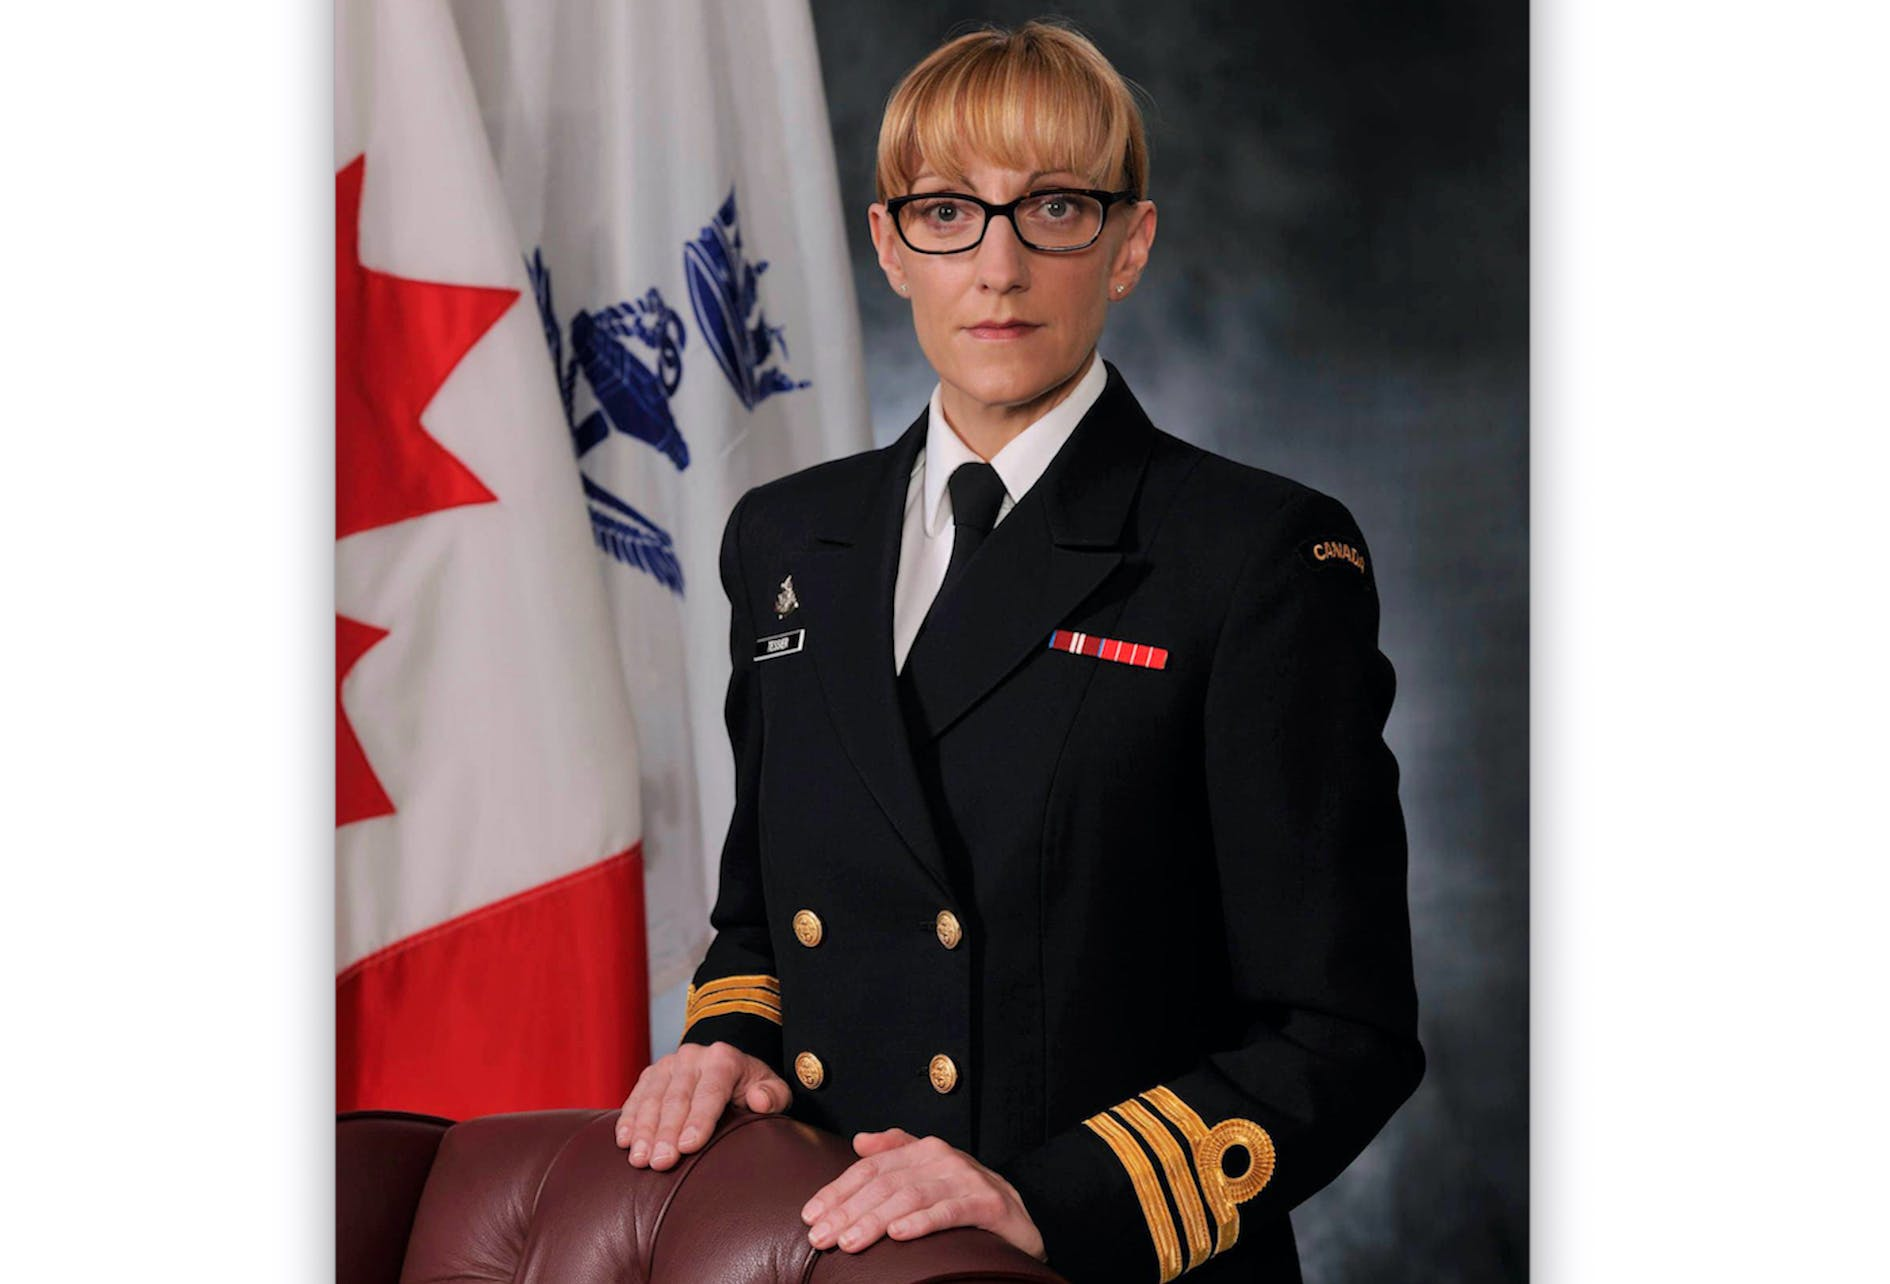 Michele Tessier of Grand Bank became just the third woman to command a Canadian navy warship in 2010. She is planning to retire this fall after a rewarding 25-year military career. — Contributed photo